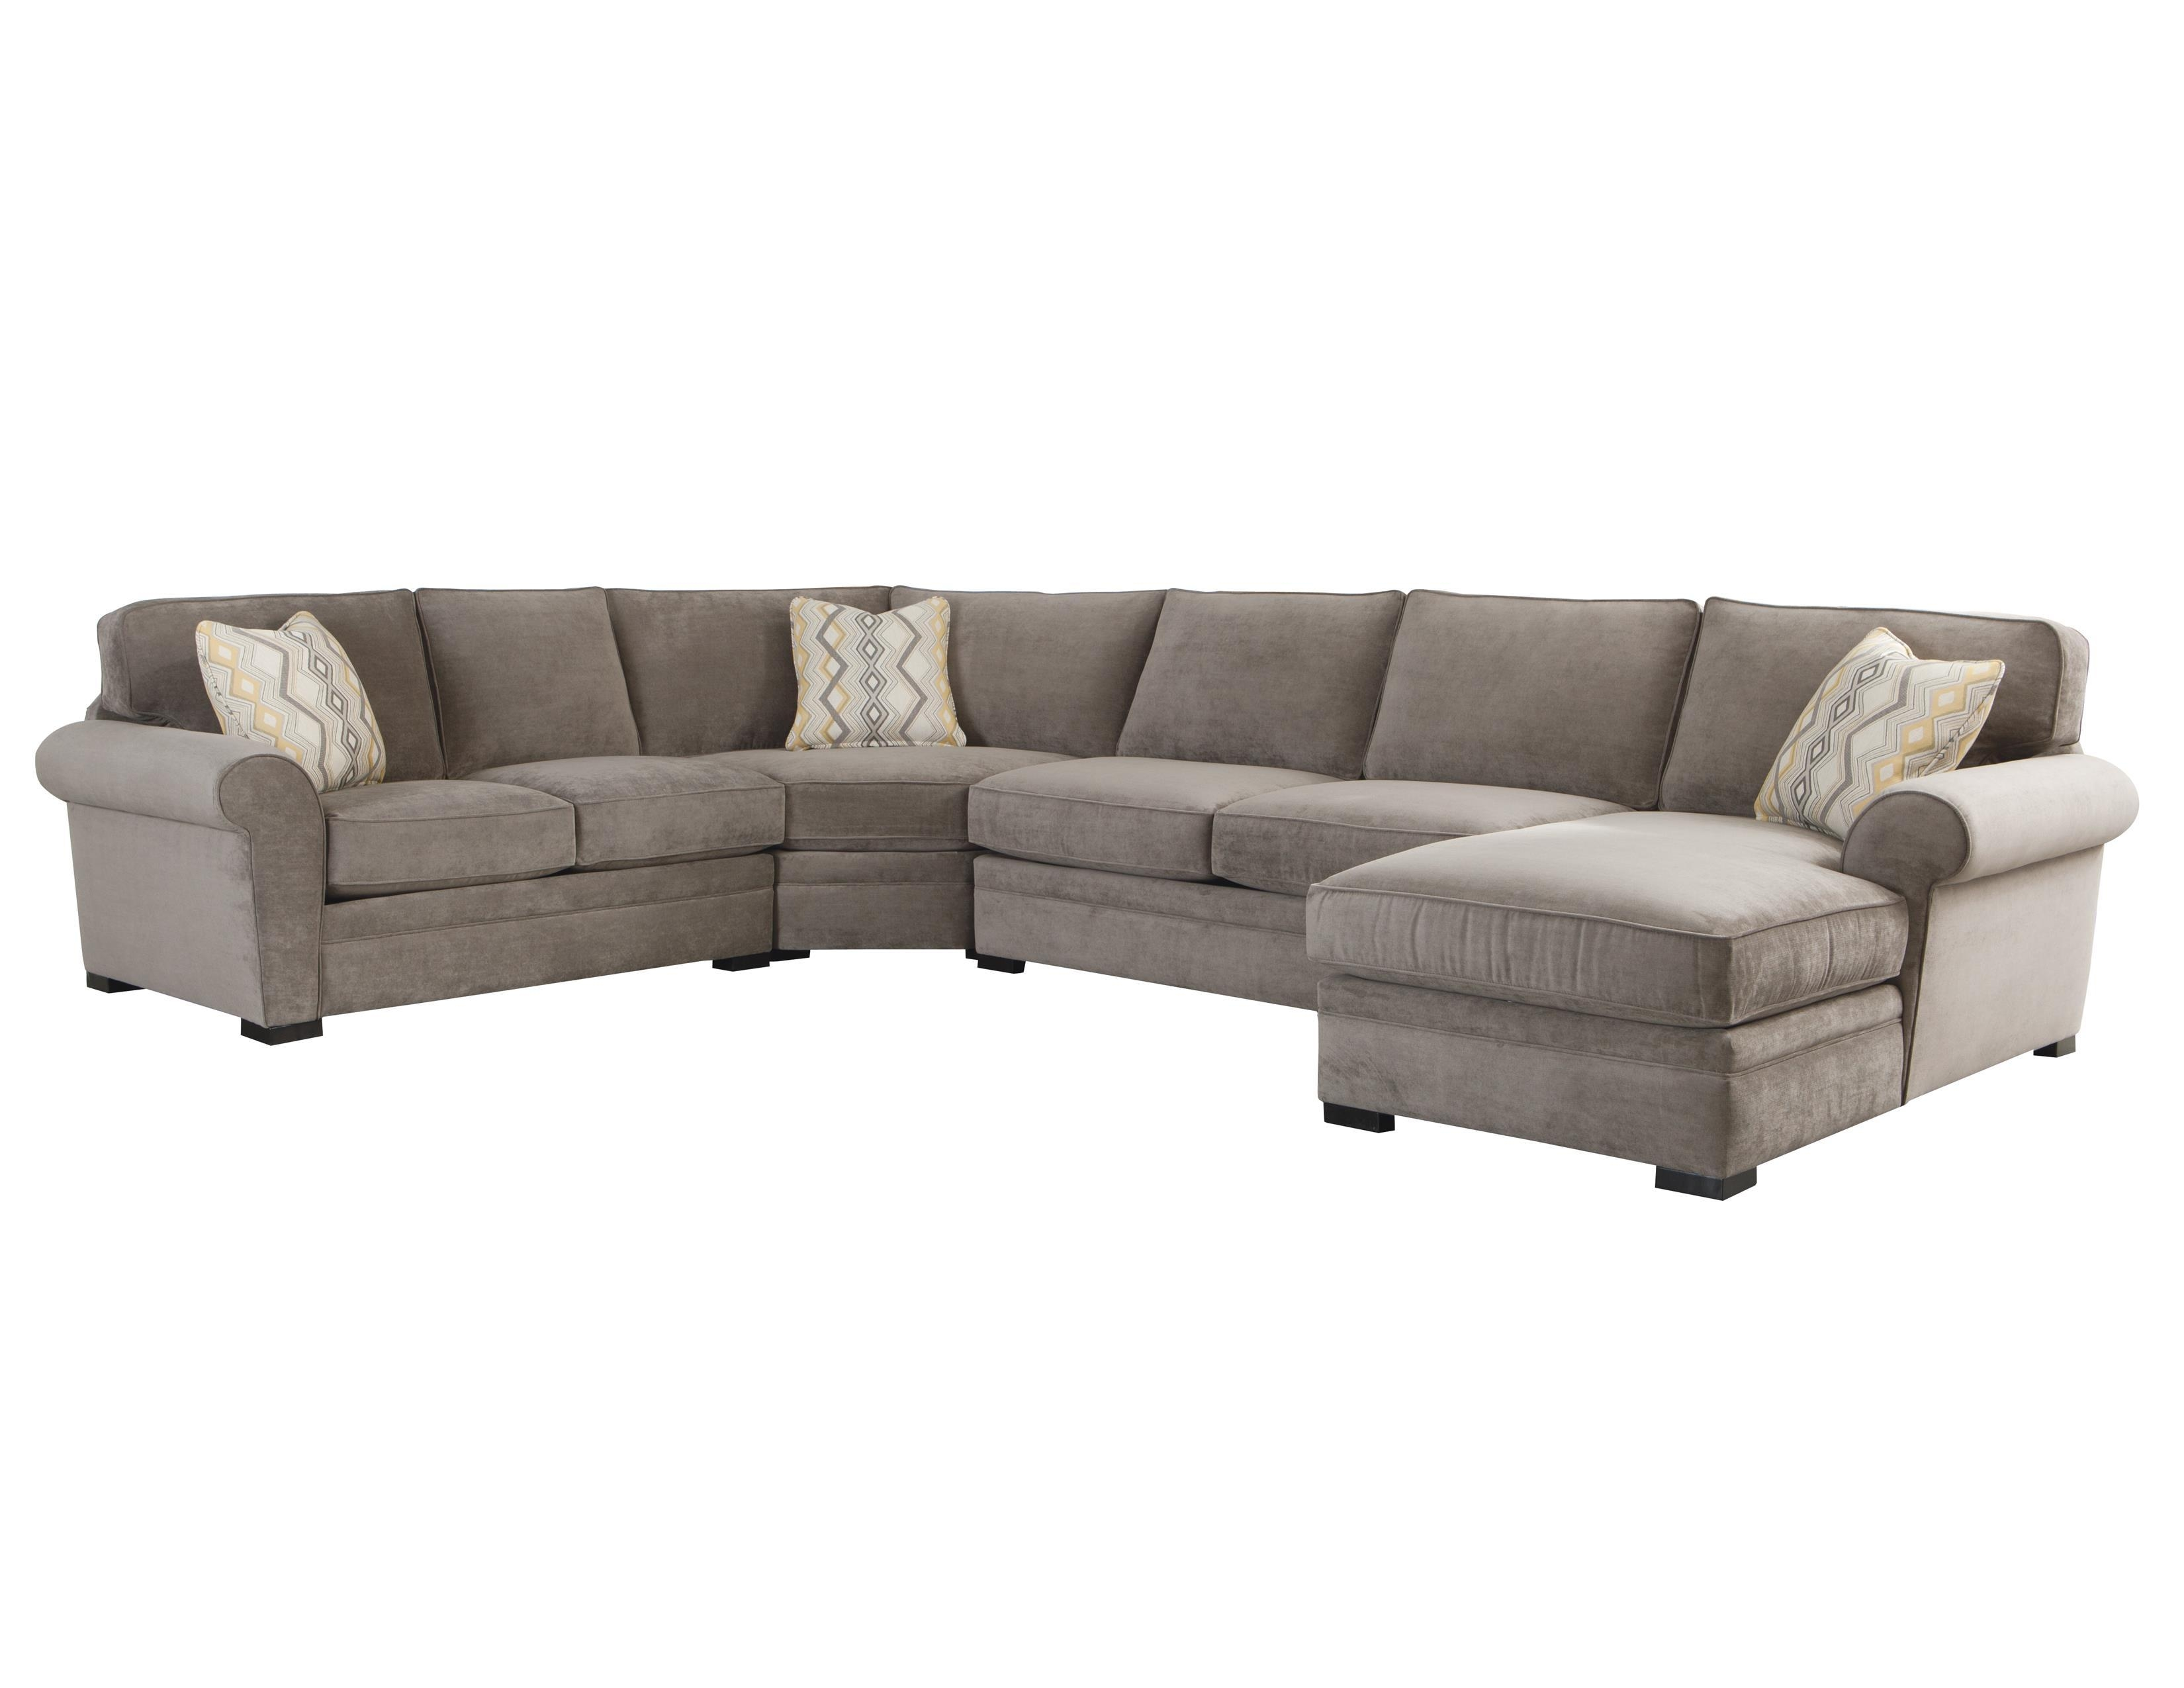 Sofa Ideas Jonathan Louis Sectional Explore 1 Of 20 Photos